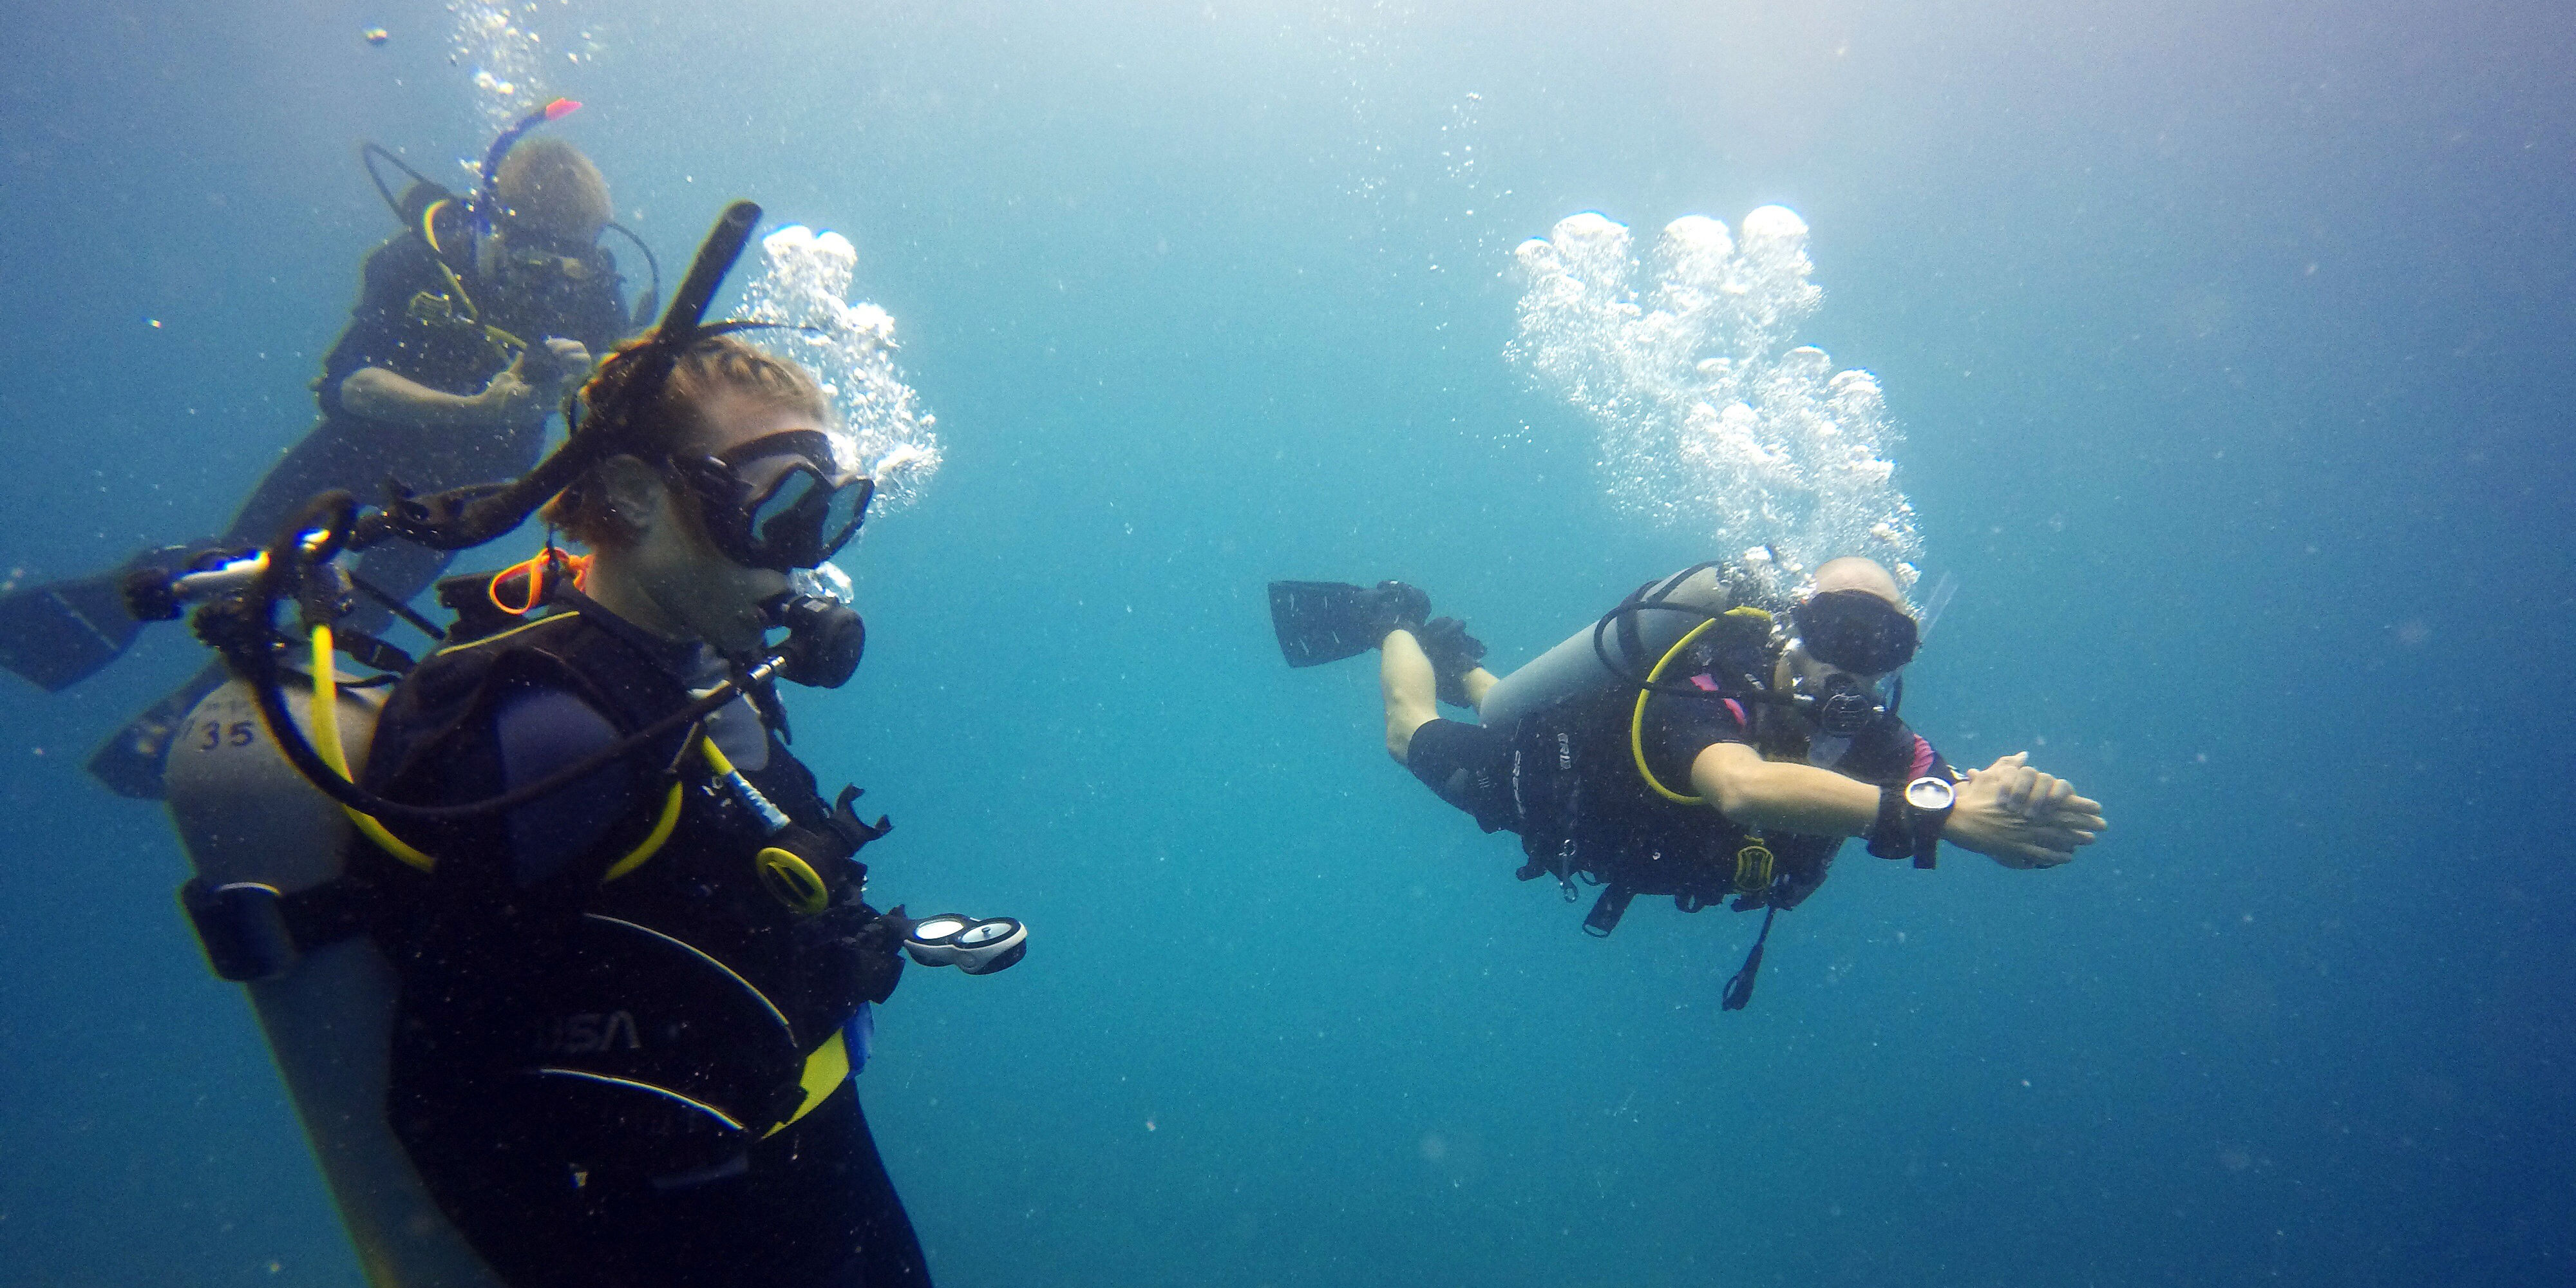 GVI participants work on upping their PADI certification levels by clocking open water dives.